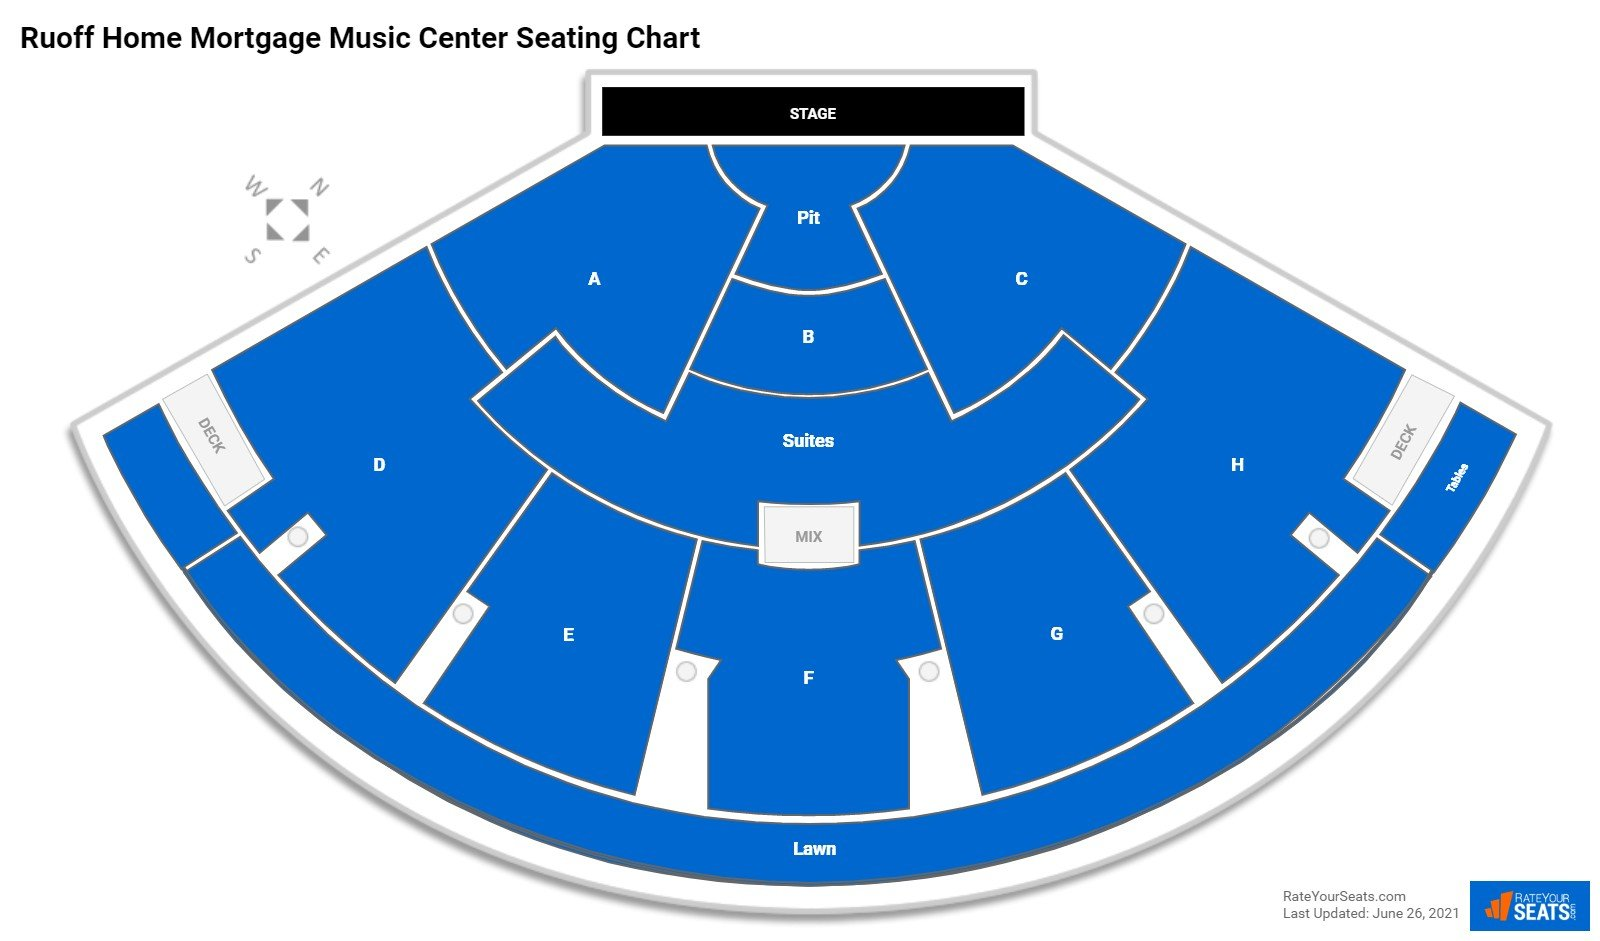 Ruoff Home Mortgage Music Center Seating Chart